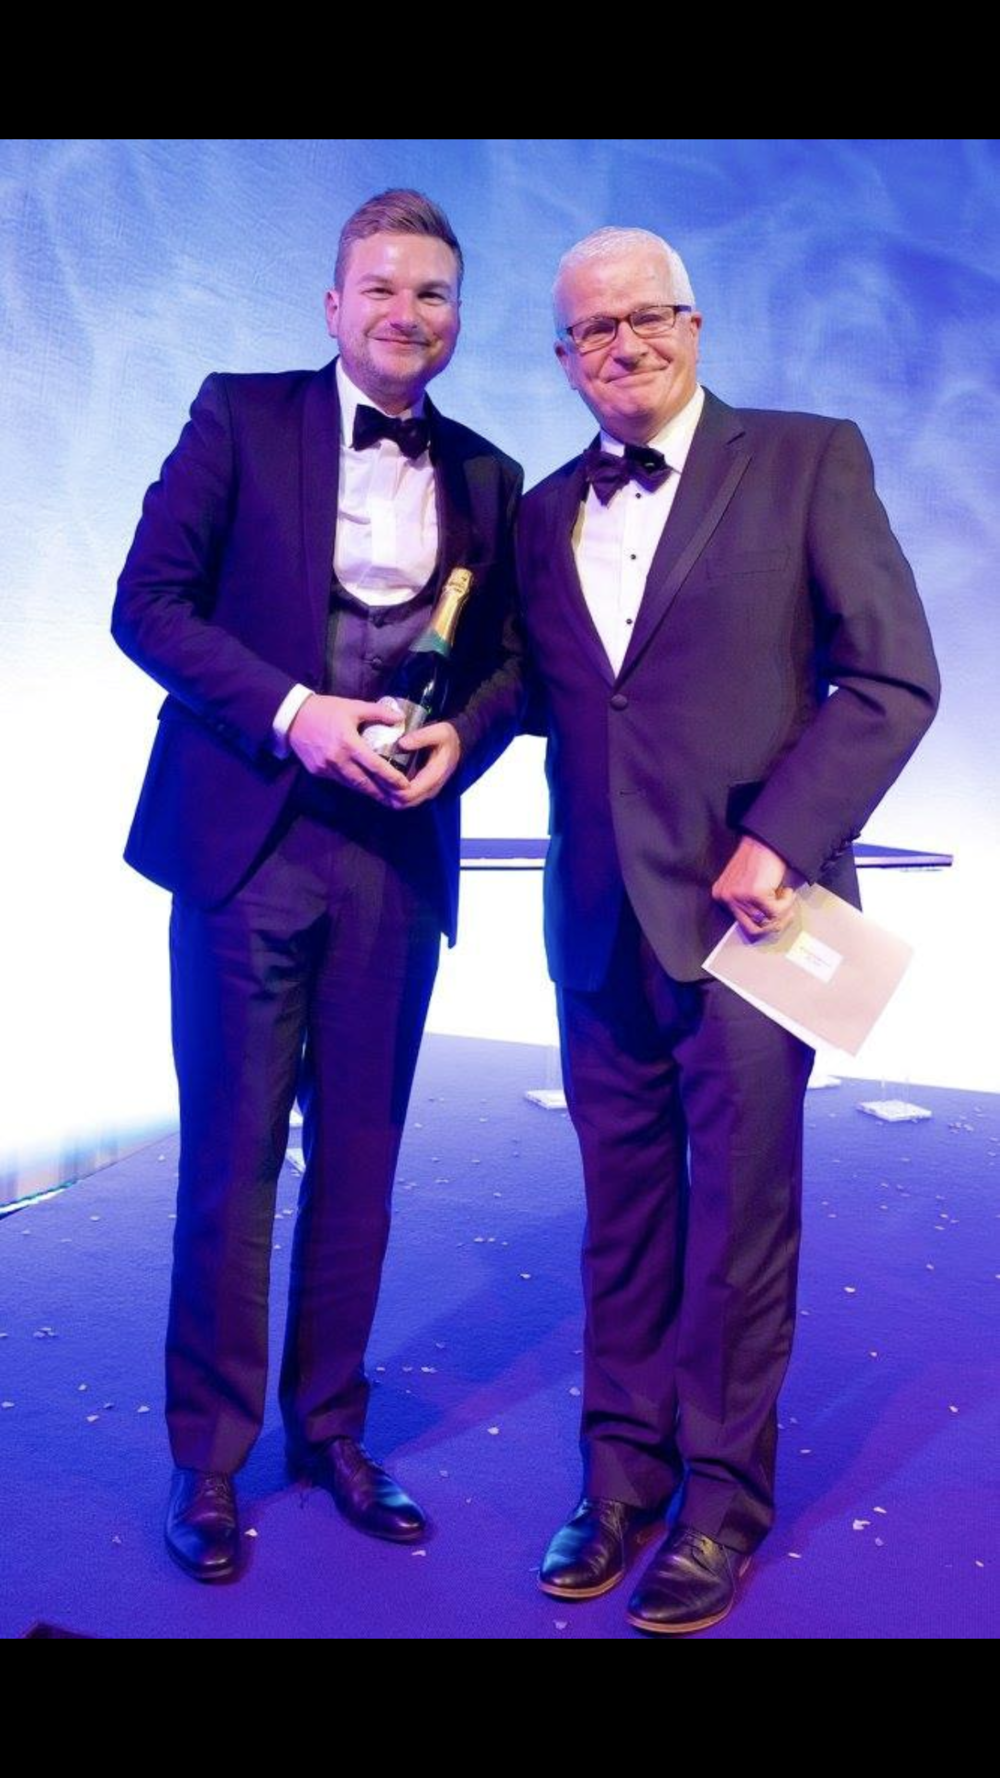 Andrew collecting our award at The Bridal Buyer Awards.